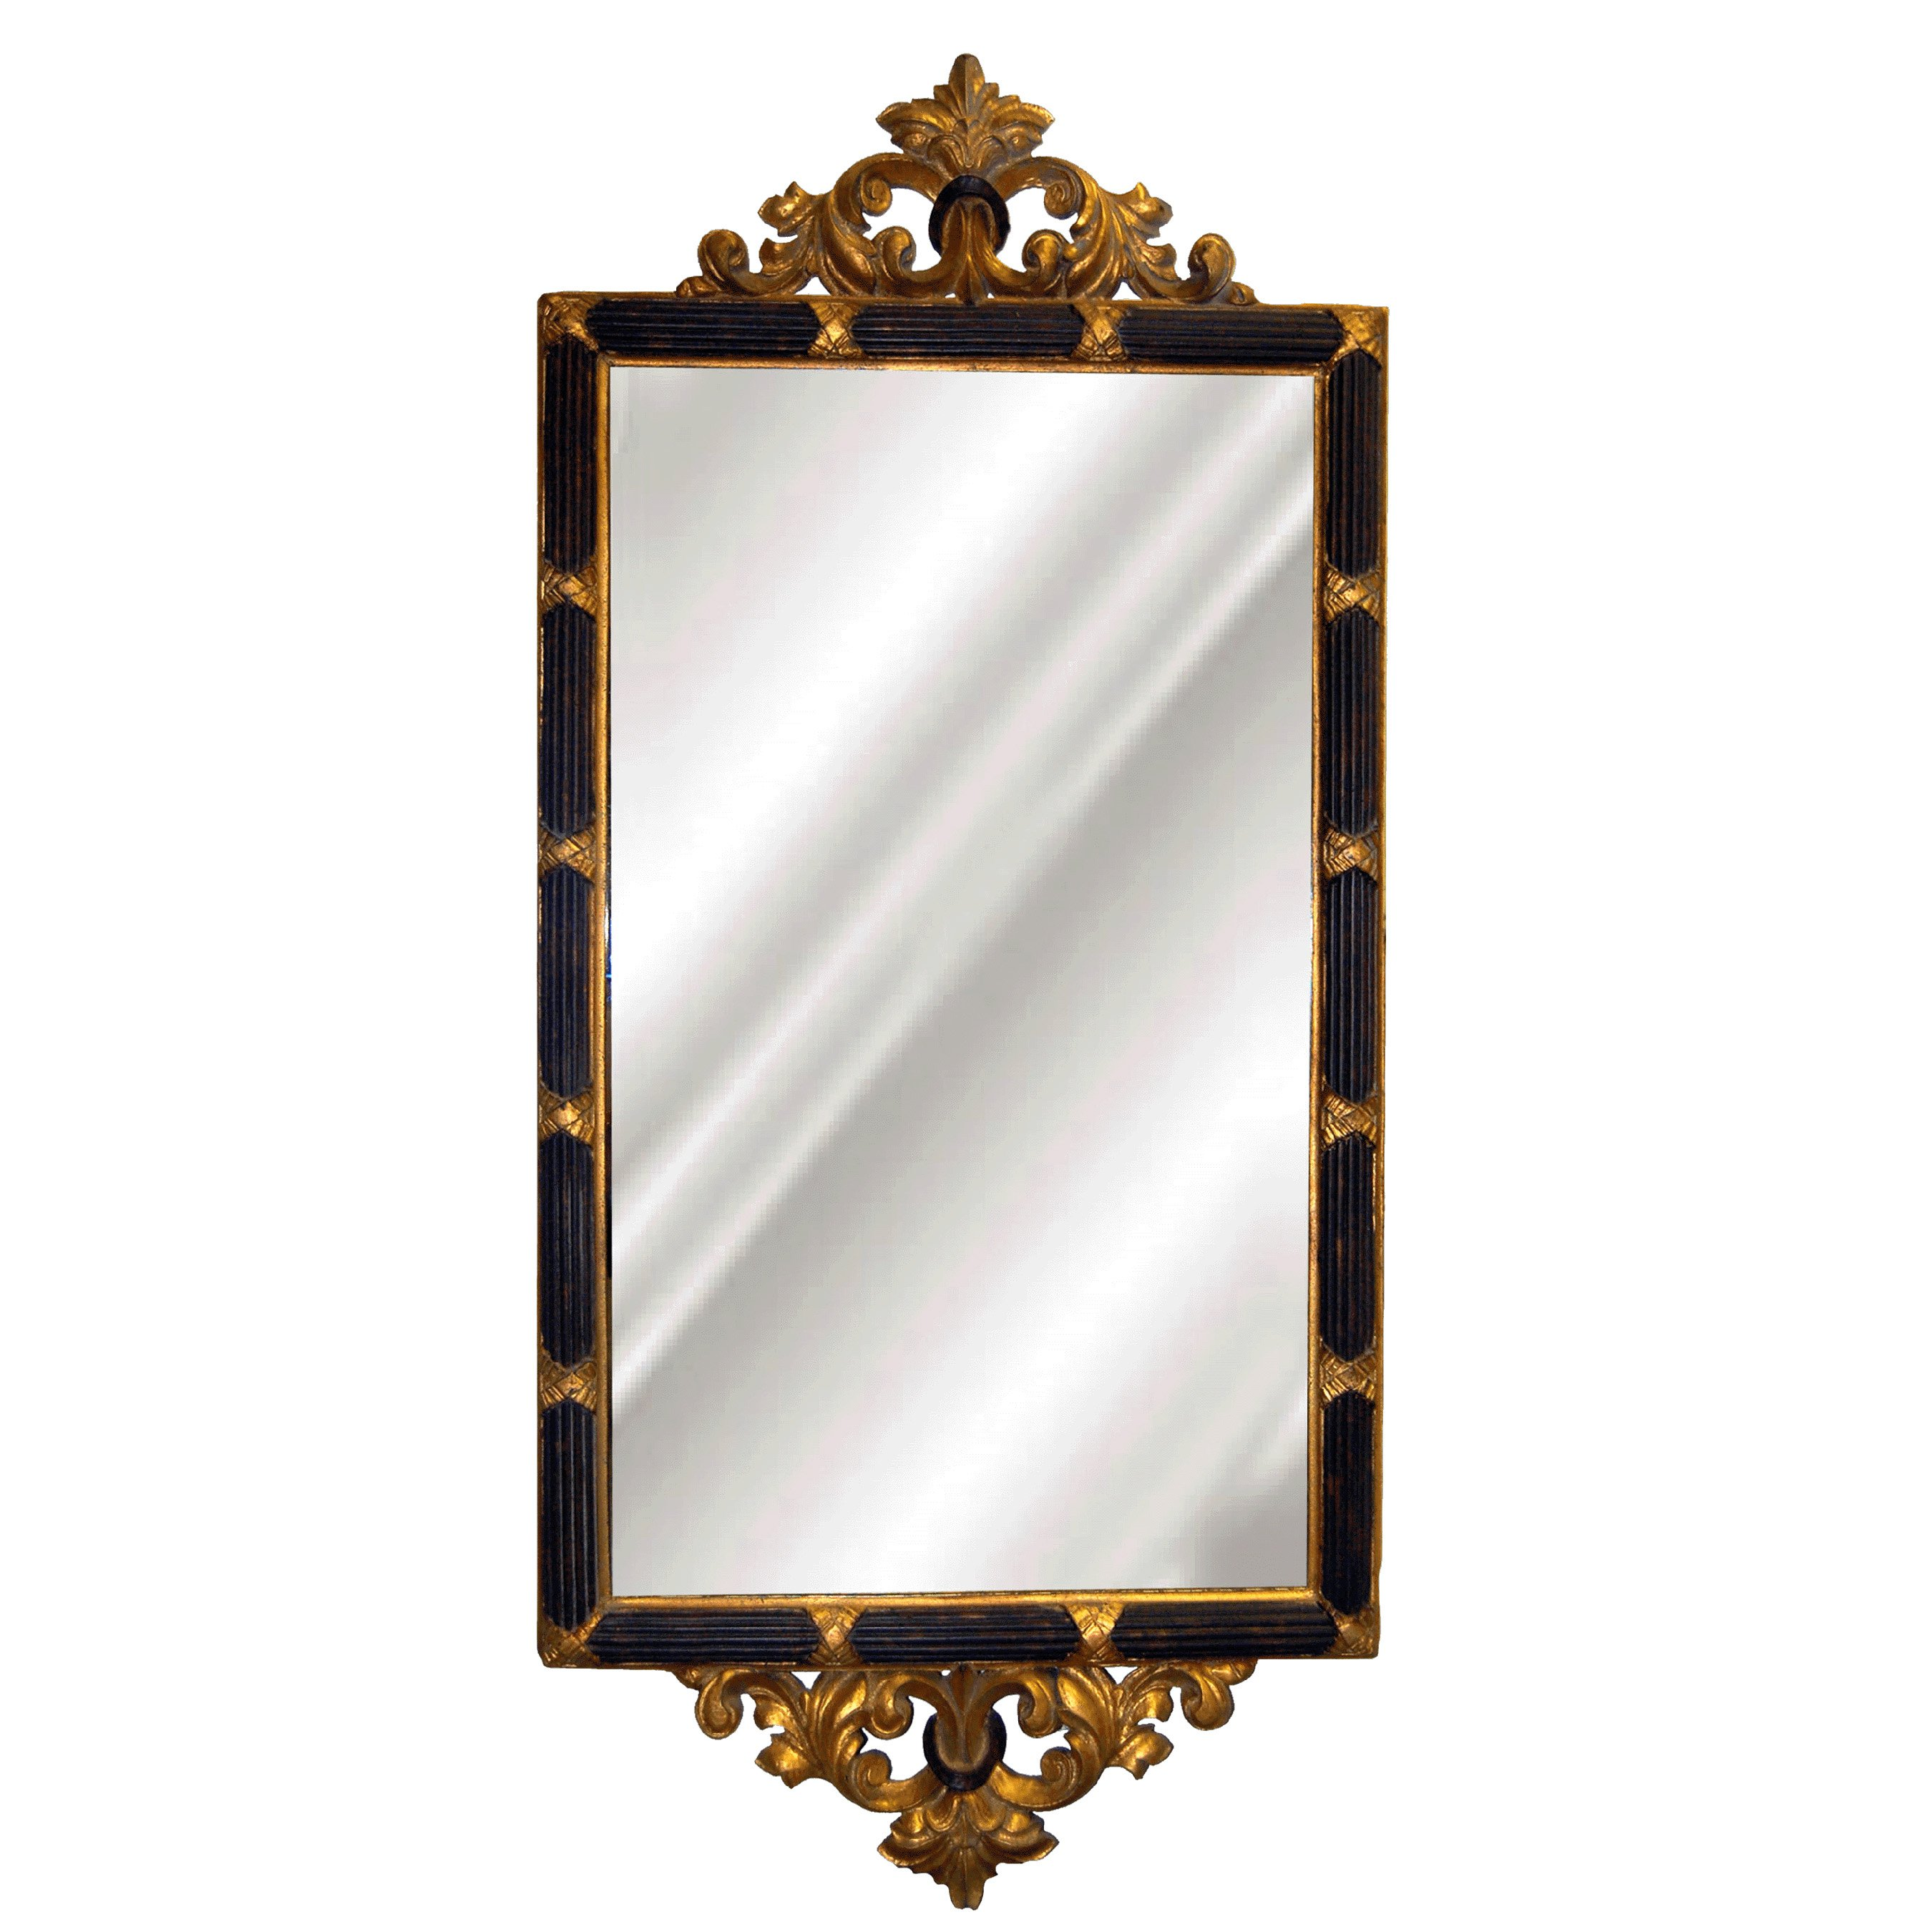 Hickory Manor House Double Dunbar Mirror - 24.5W x 55H in.